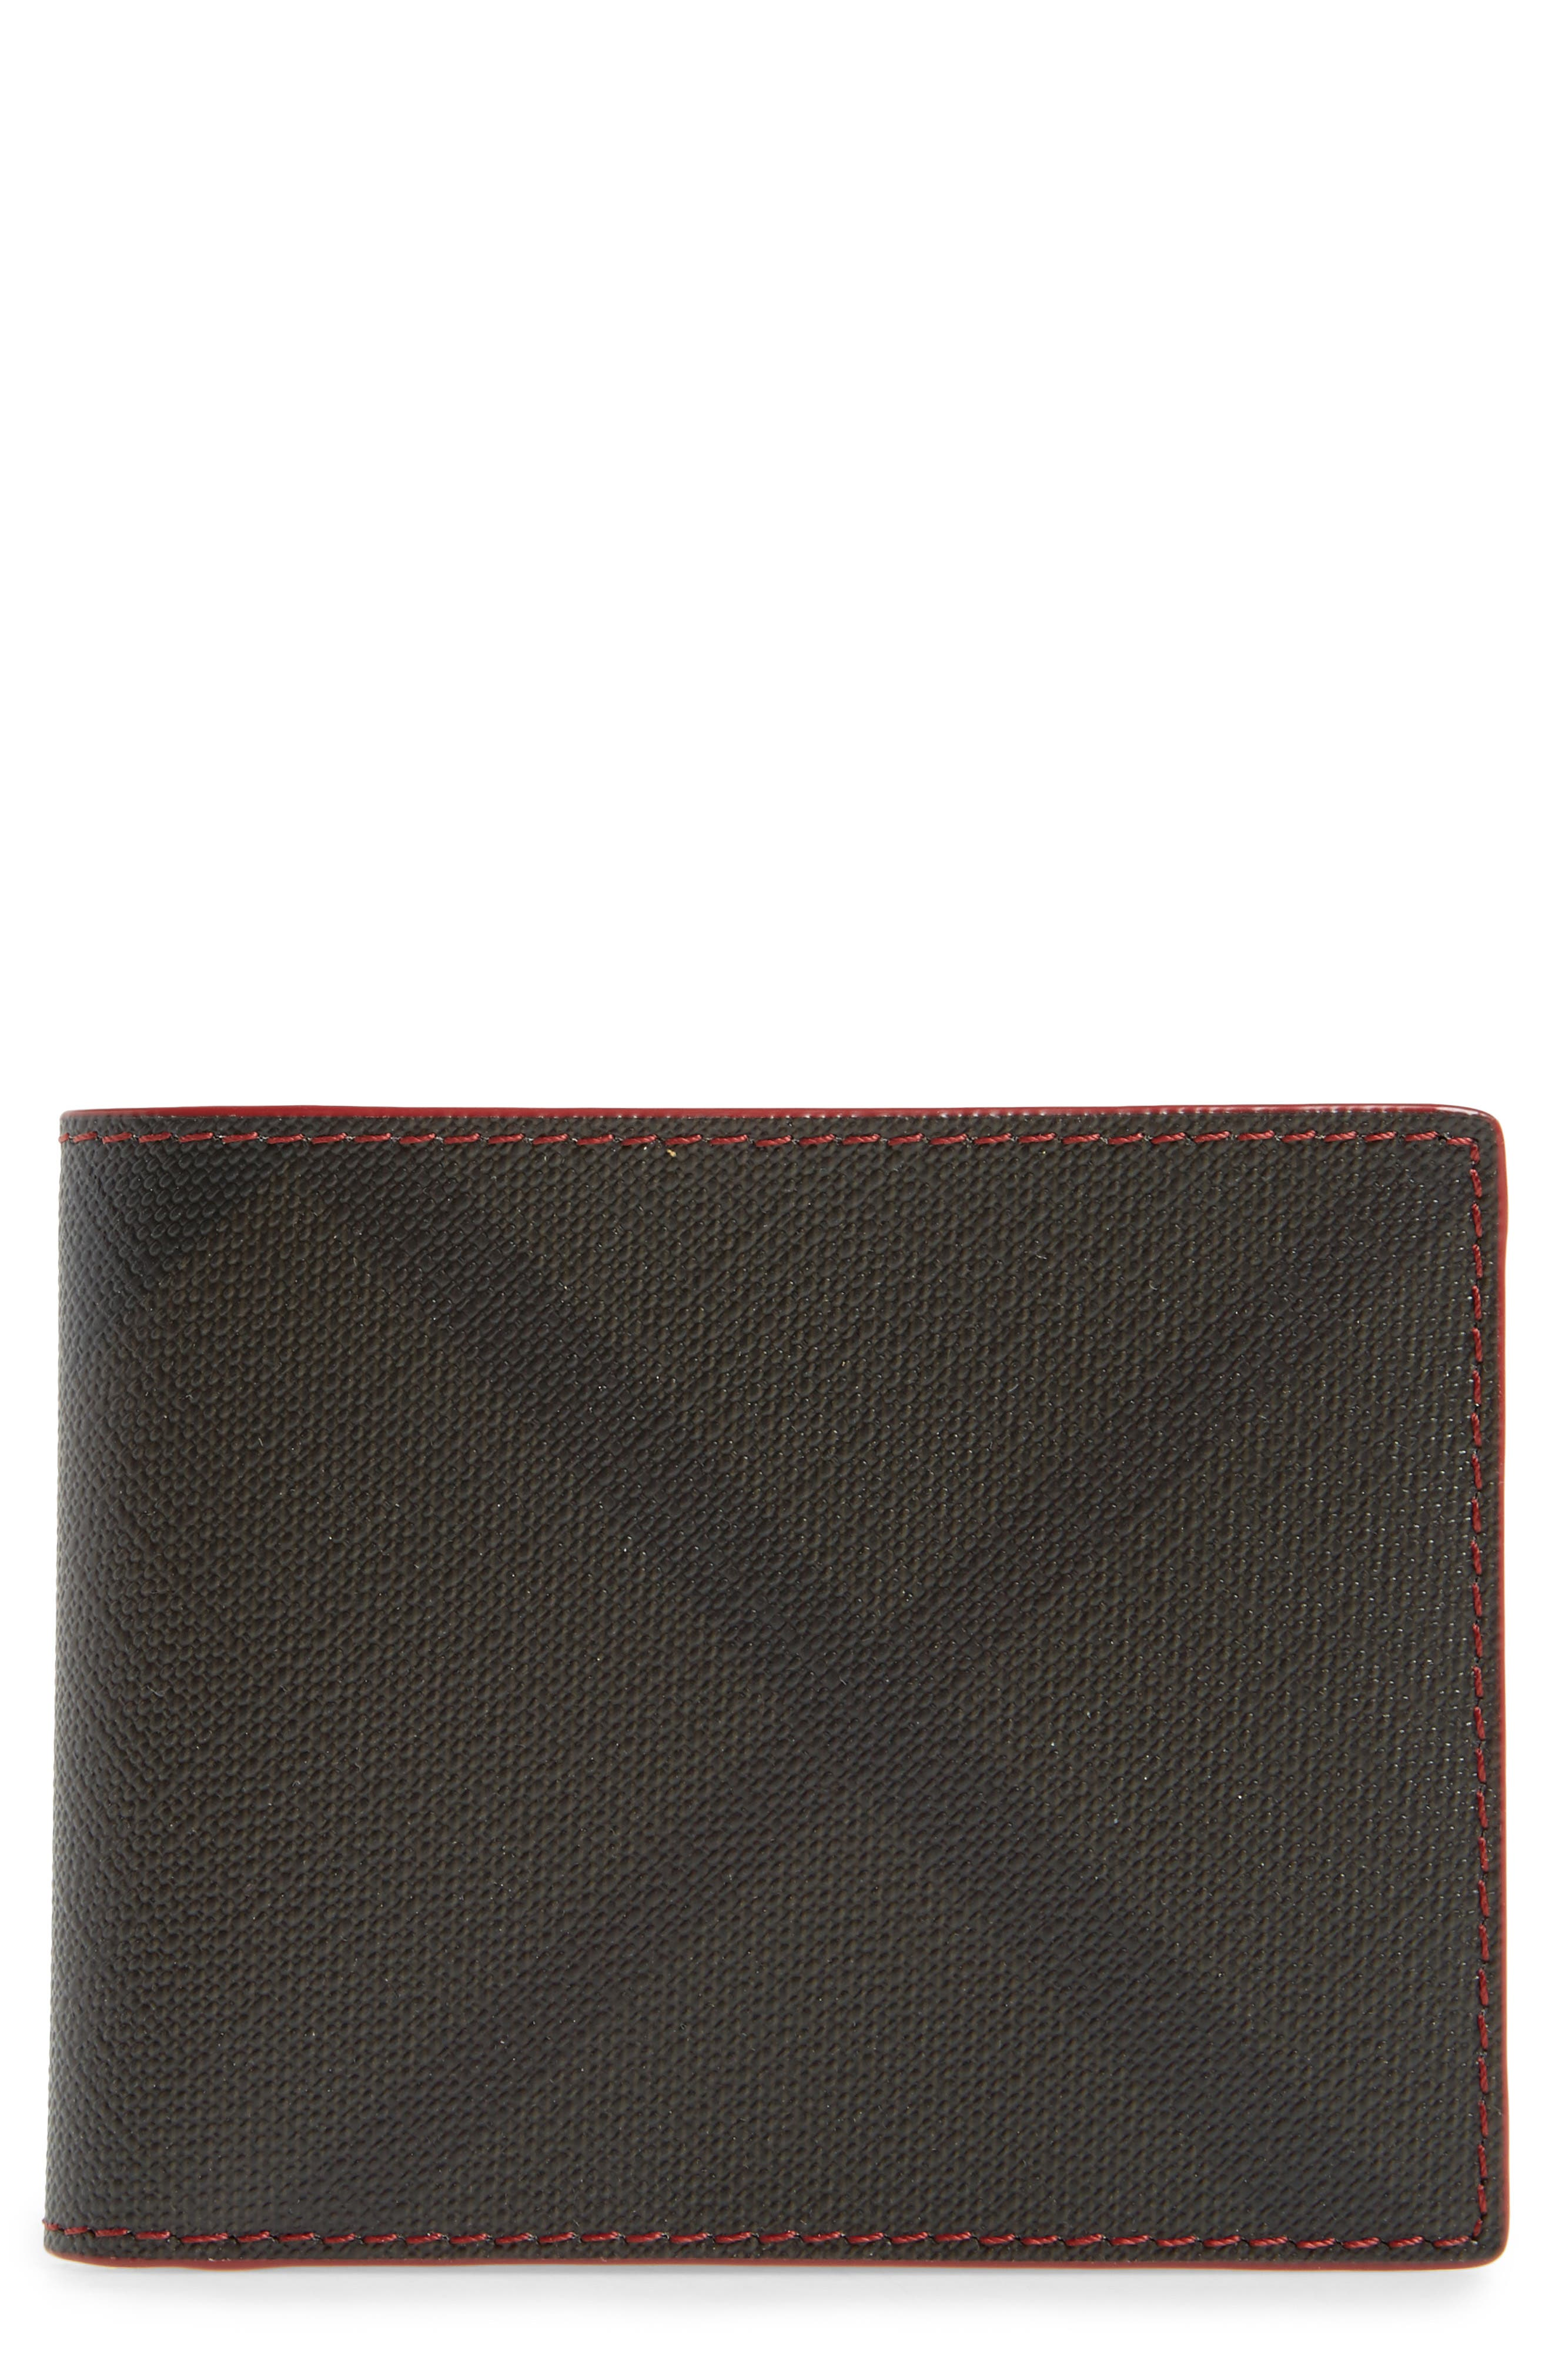 Check Faux Leather Wallet,                             Main thumbnail 1, color,                             207